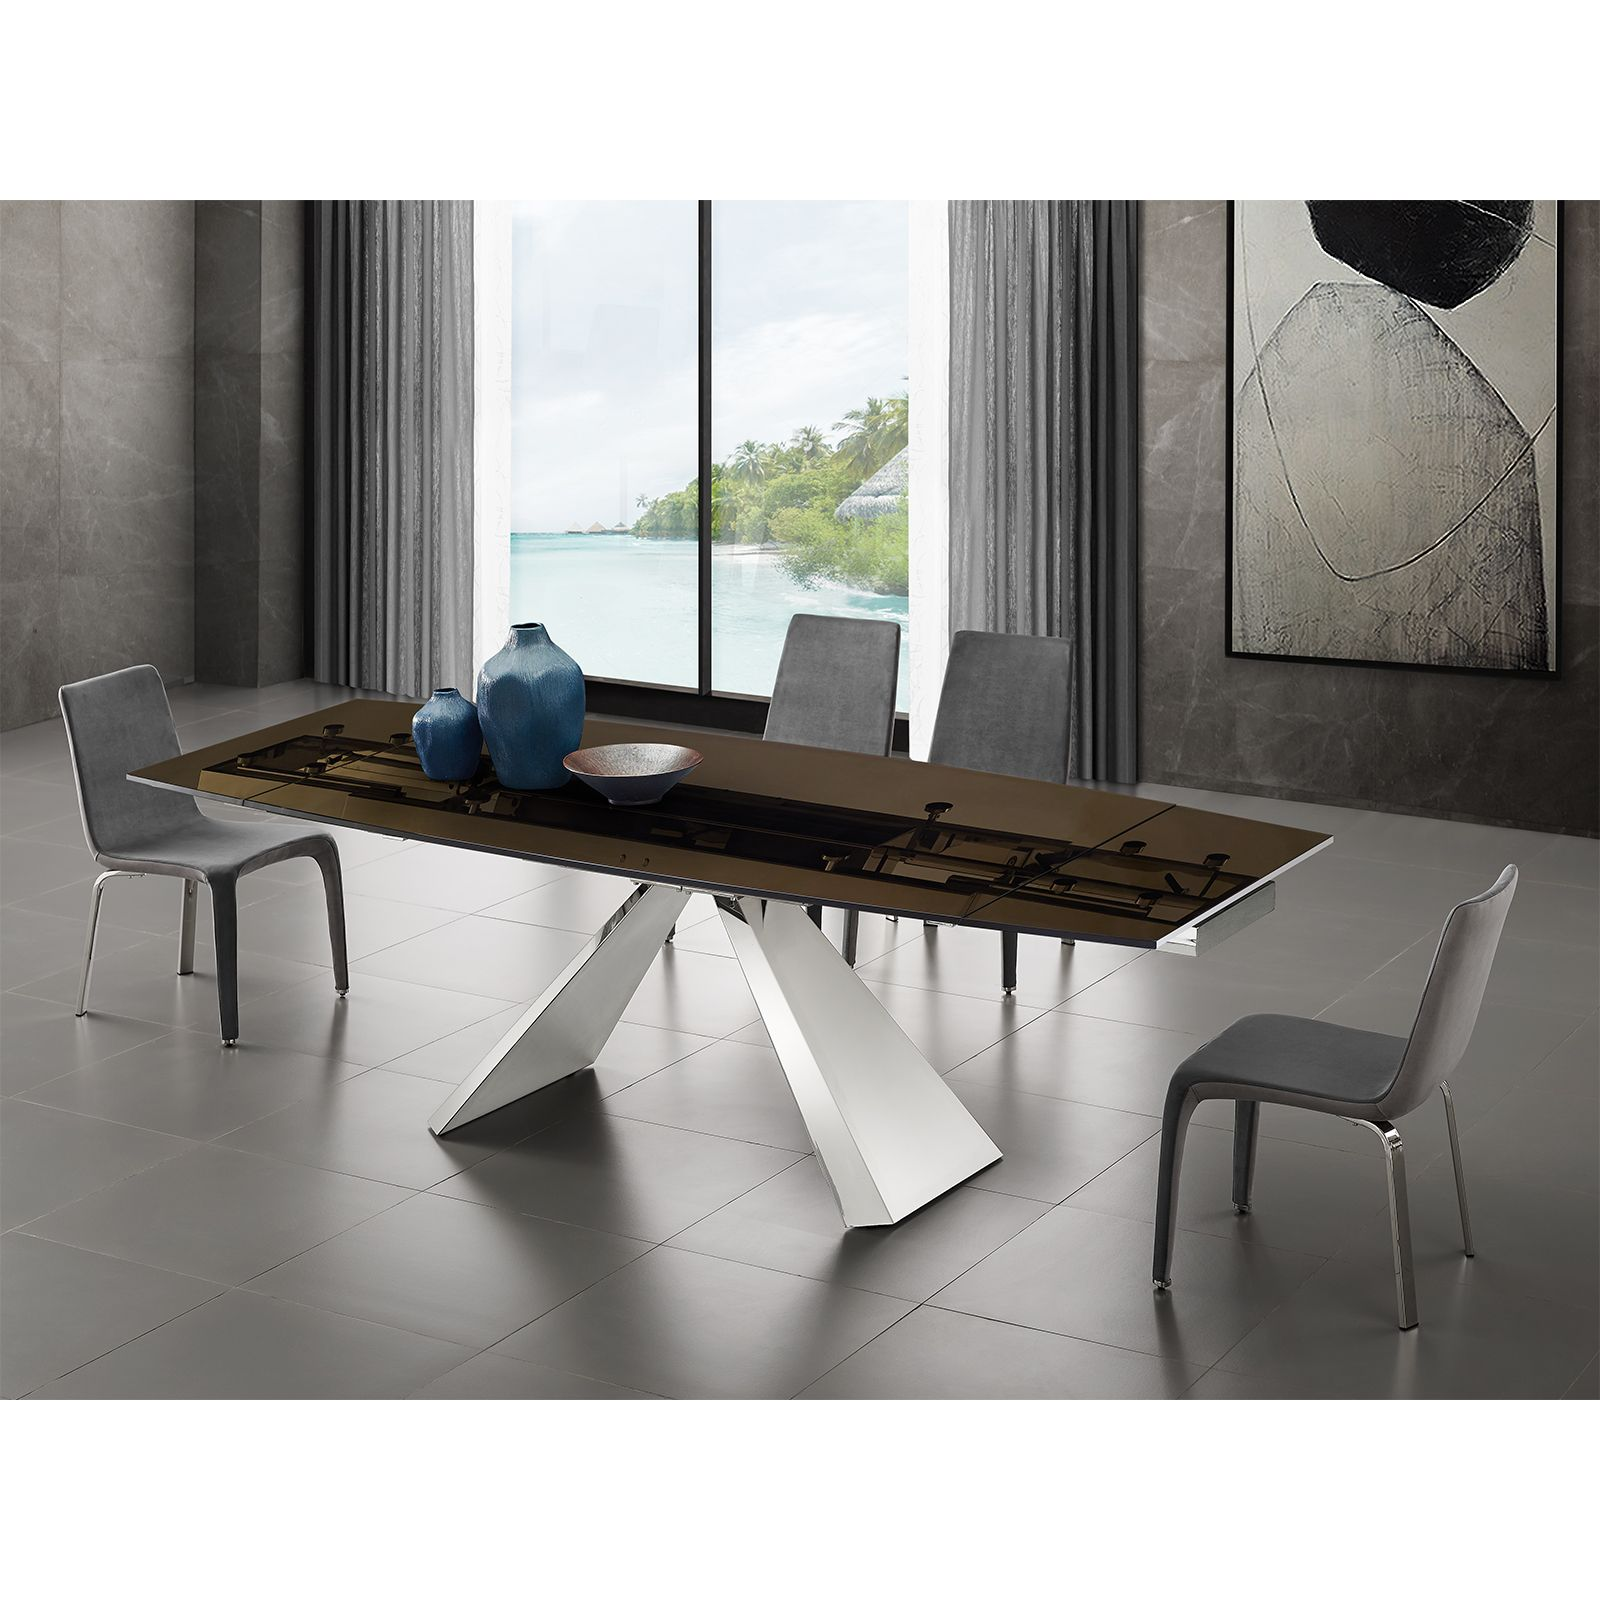 Stanza Motorized Dining Table In Smoked Glass Bostonconcept Com